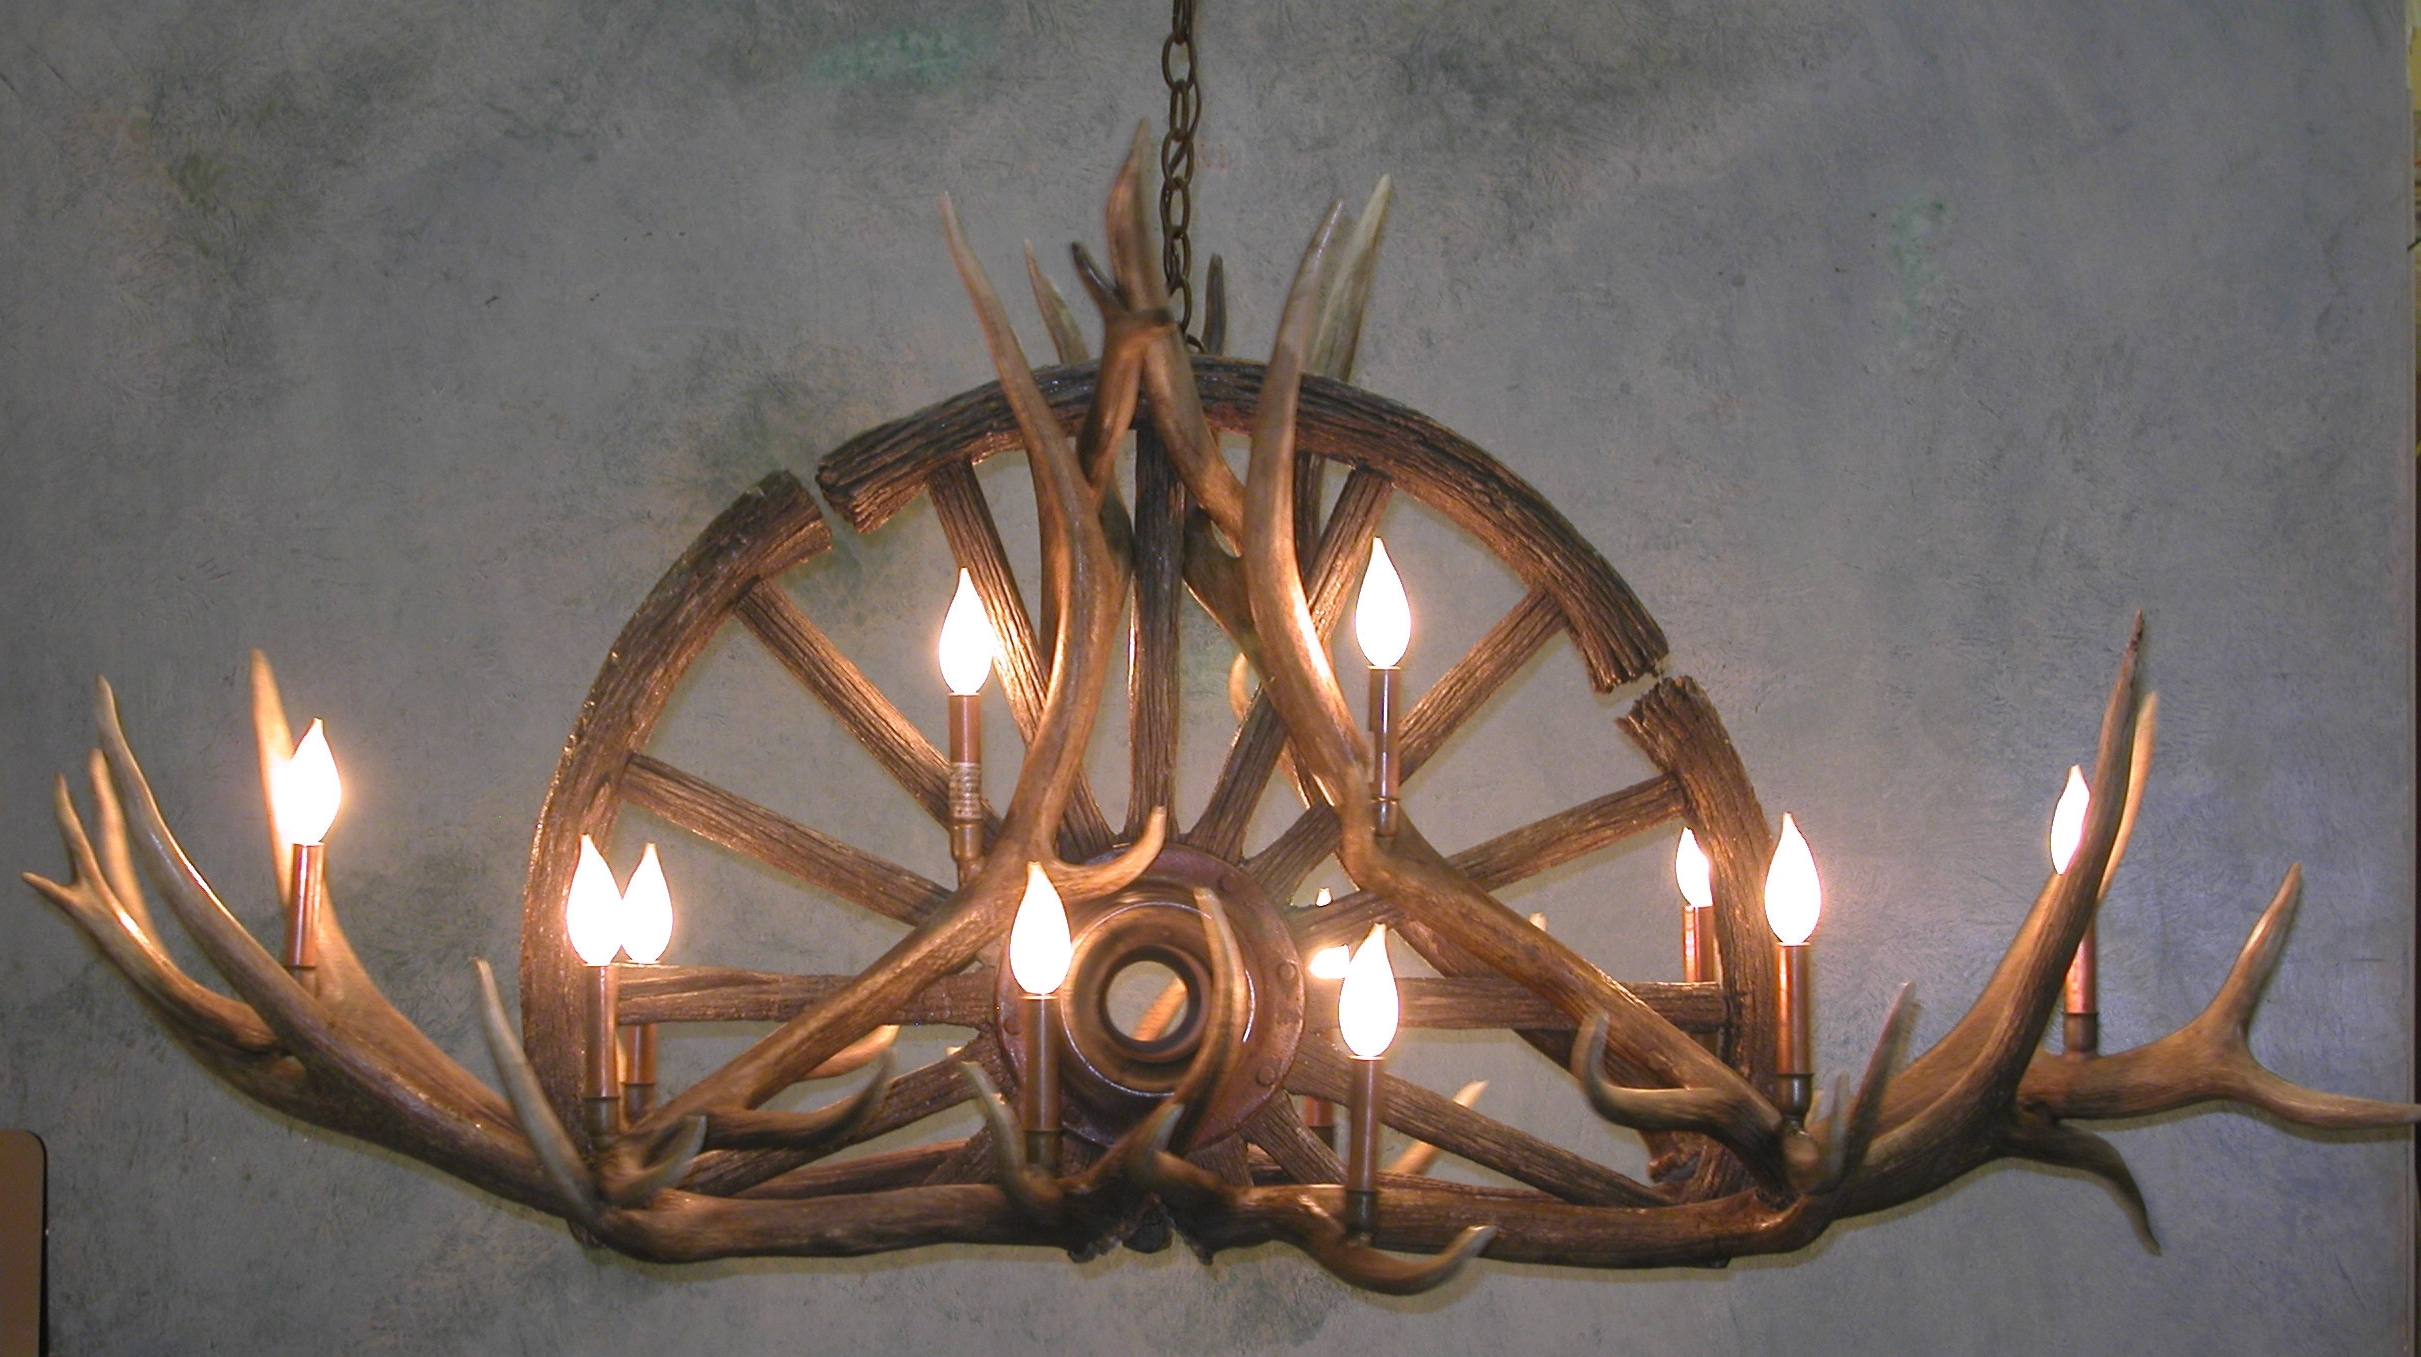 Antler Chandeliers For Sale (View 4 of 20)